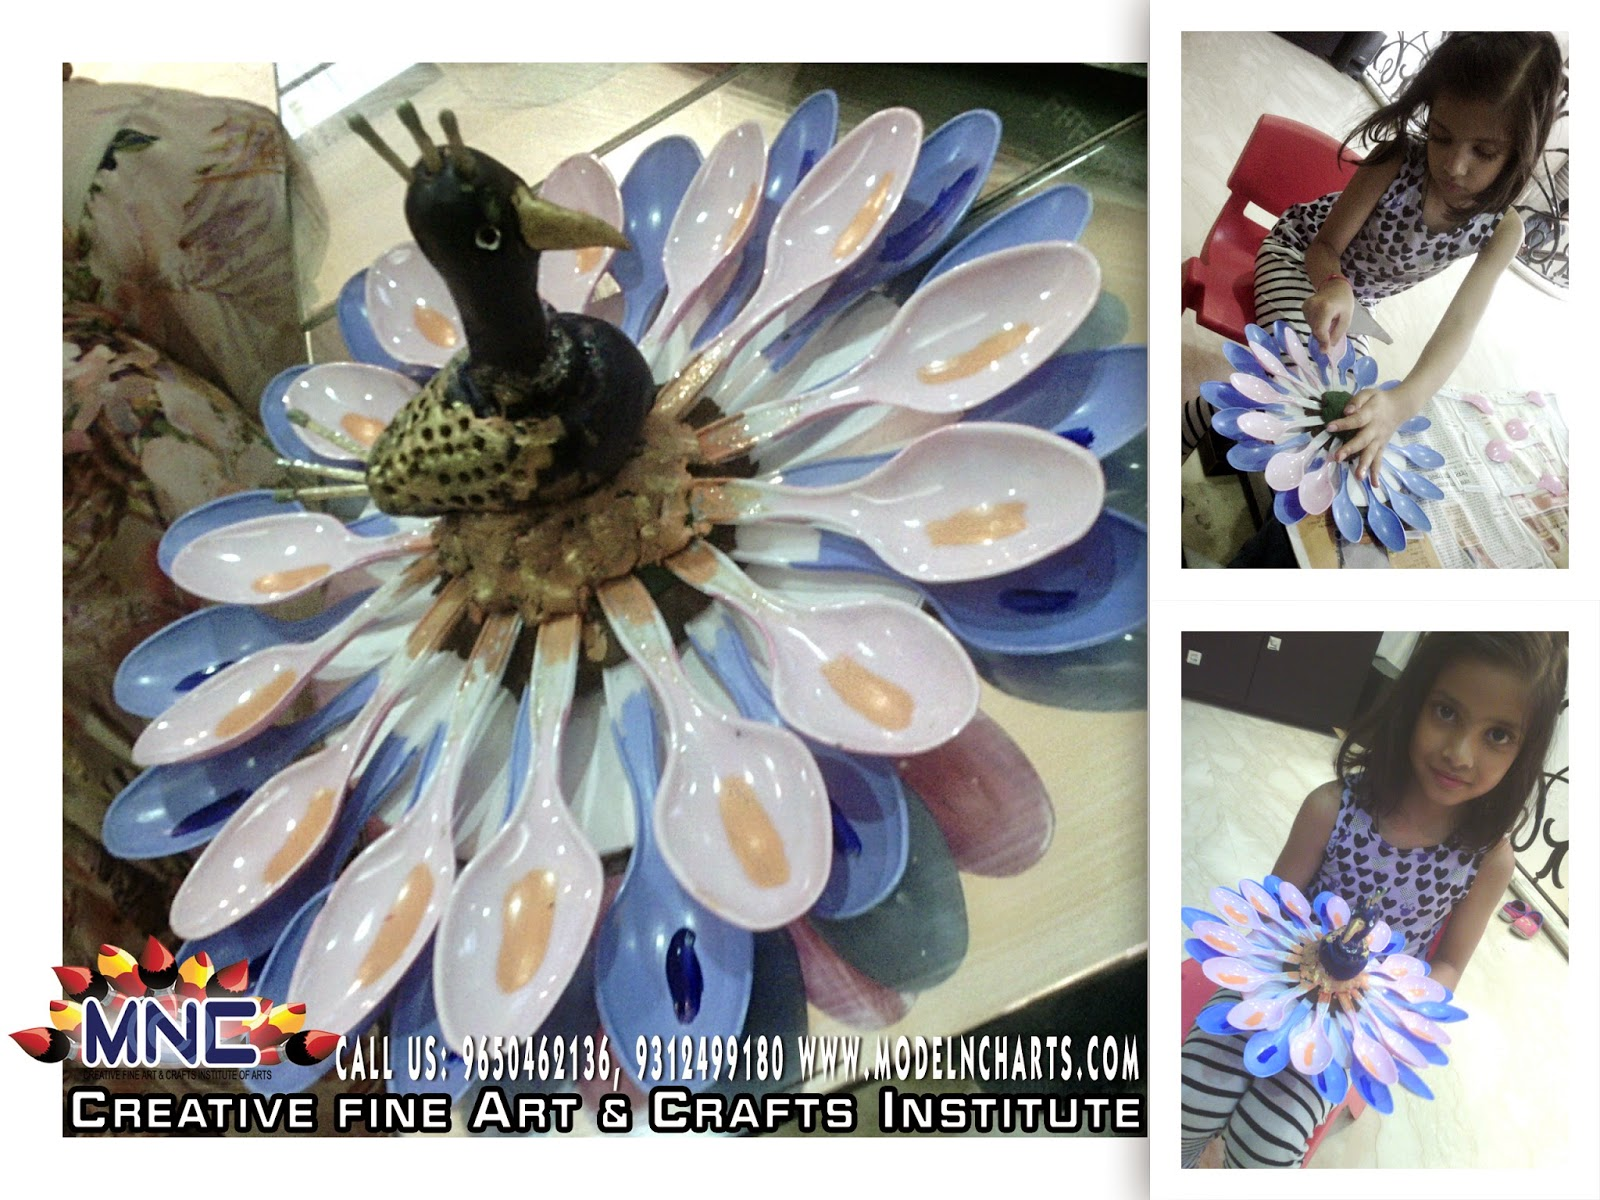 CREATIVE FINE ART AND CRAFTS INSTITUTE OFFER DRAWING PAINTING CLAY MODELING COURSES HOME CLASS M 9650462136 9312499180 FOR